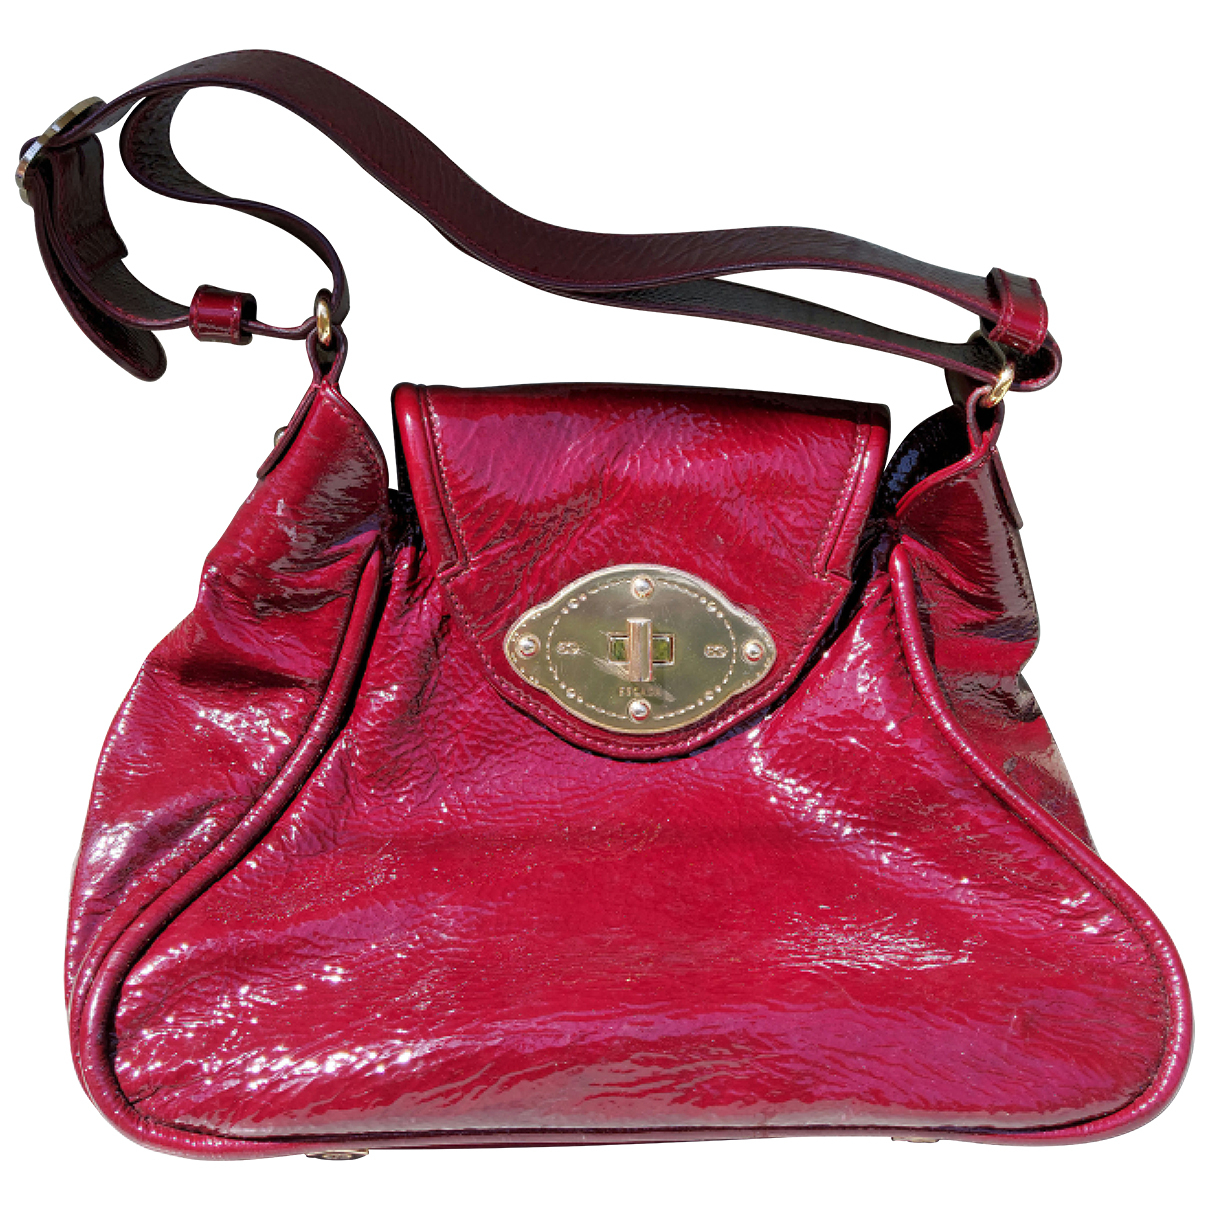 Escada \N Red Leather handbag for Women \N